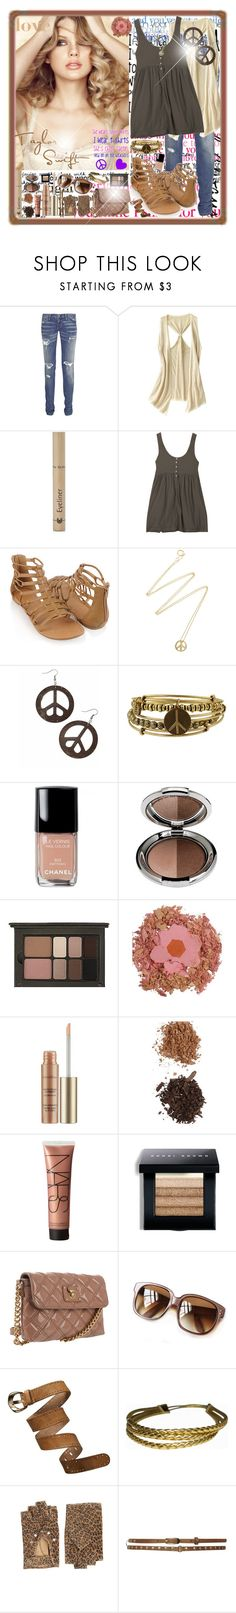 """""""Taylor Swift <3"""" by andrej4e-xoxo ❤ liked on Polyvore featuring Current/Elliott, Old Navy, Dr.Hauschka, Jigsaw, Forever 21, Scosha, Soho Hearts, Alex and Ani, Chanel and philosophy"""